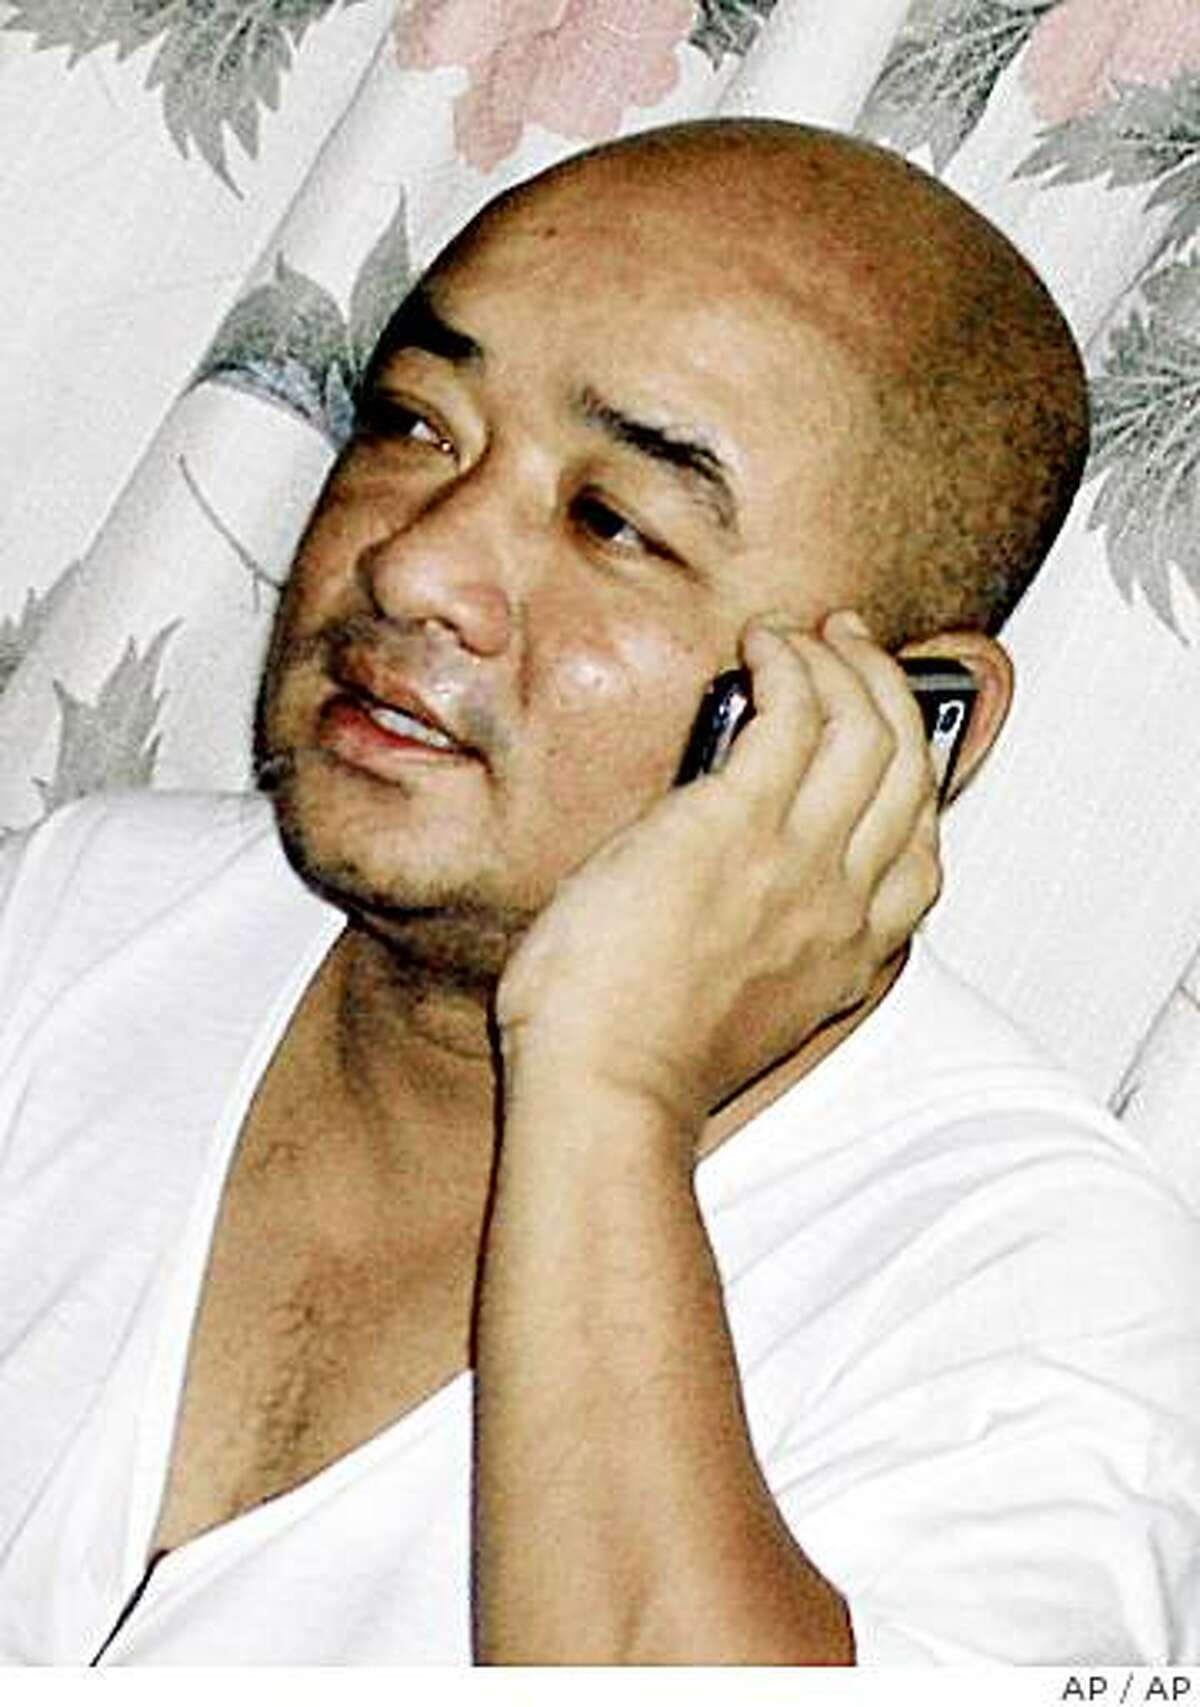 ** FILE ** In this May 18, 2006 file photo Myanmar comedian Maung Thura, better known by his stage name of Zarganar, talks on his mobile phone at his home in Yangon, Myanmar. Myanmar's most popular comic, known for his jibes against the military regime and recently for helping cyclone victims, has been taken from his home by police, family members said Thursday June 5, 2008. (AP Photo, FILE)